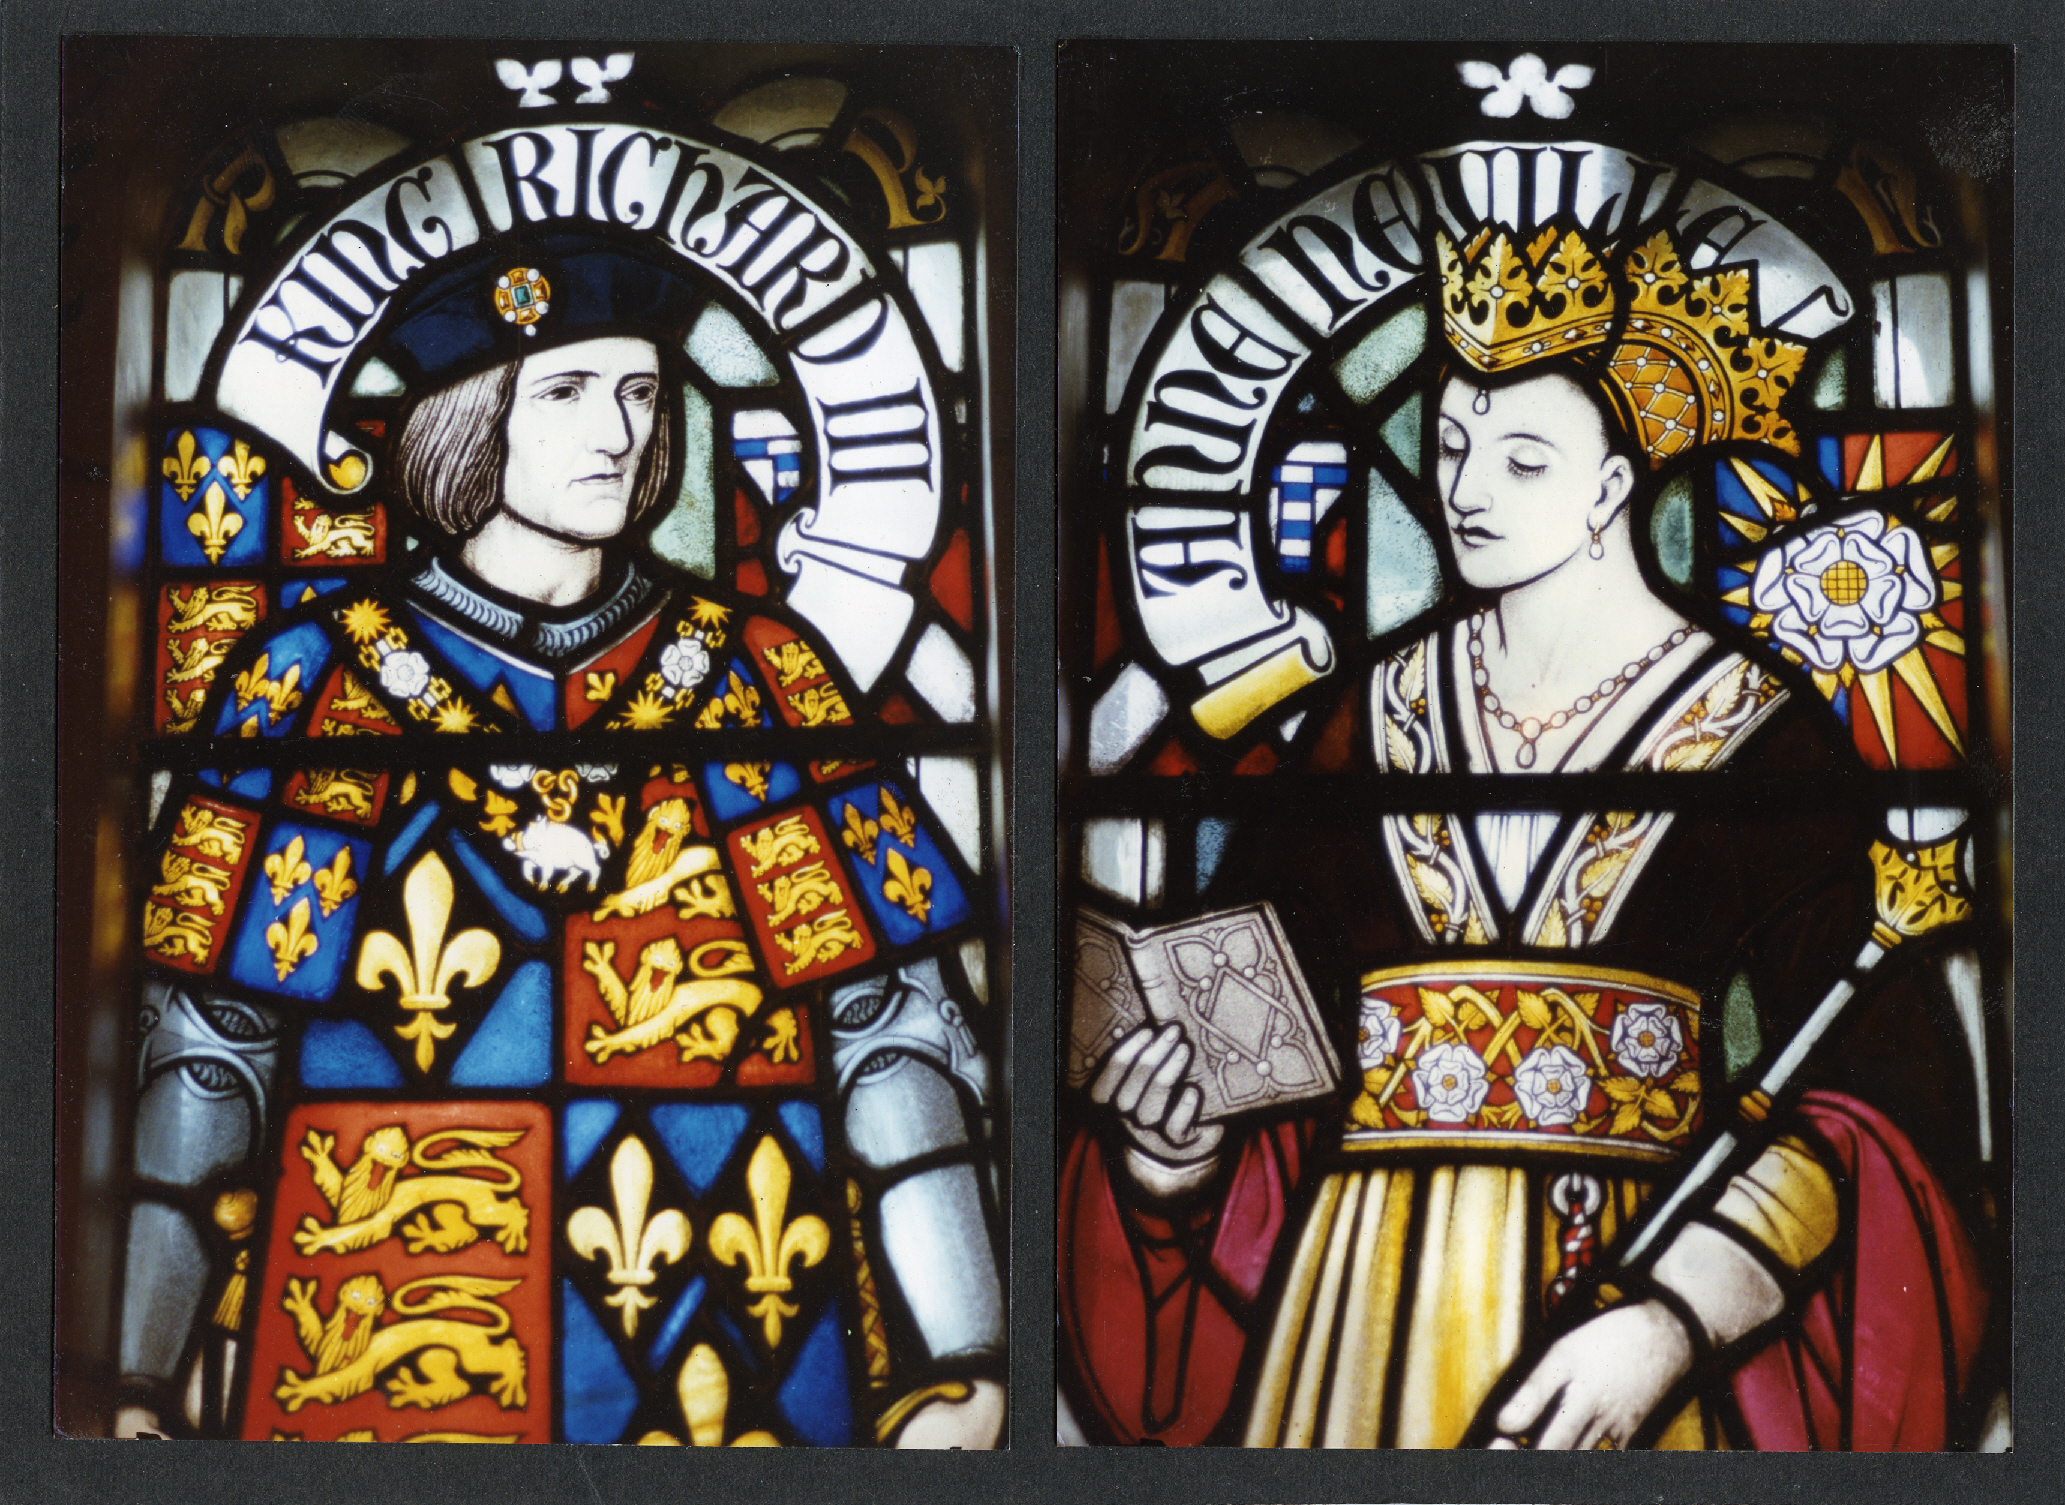 RIII and Queen Anne Neville – Stained glass window at